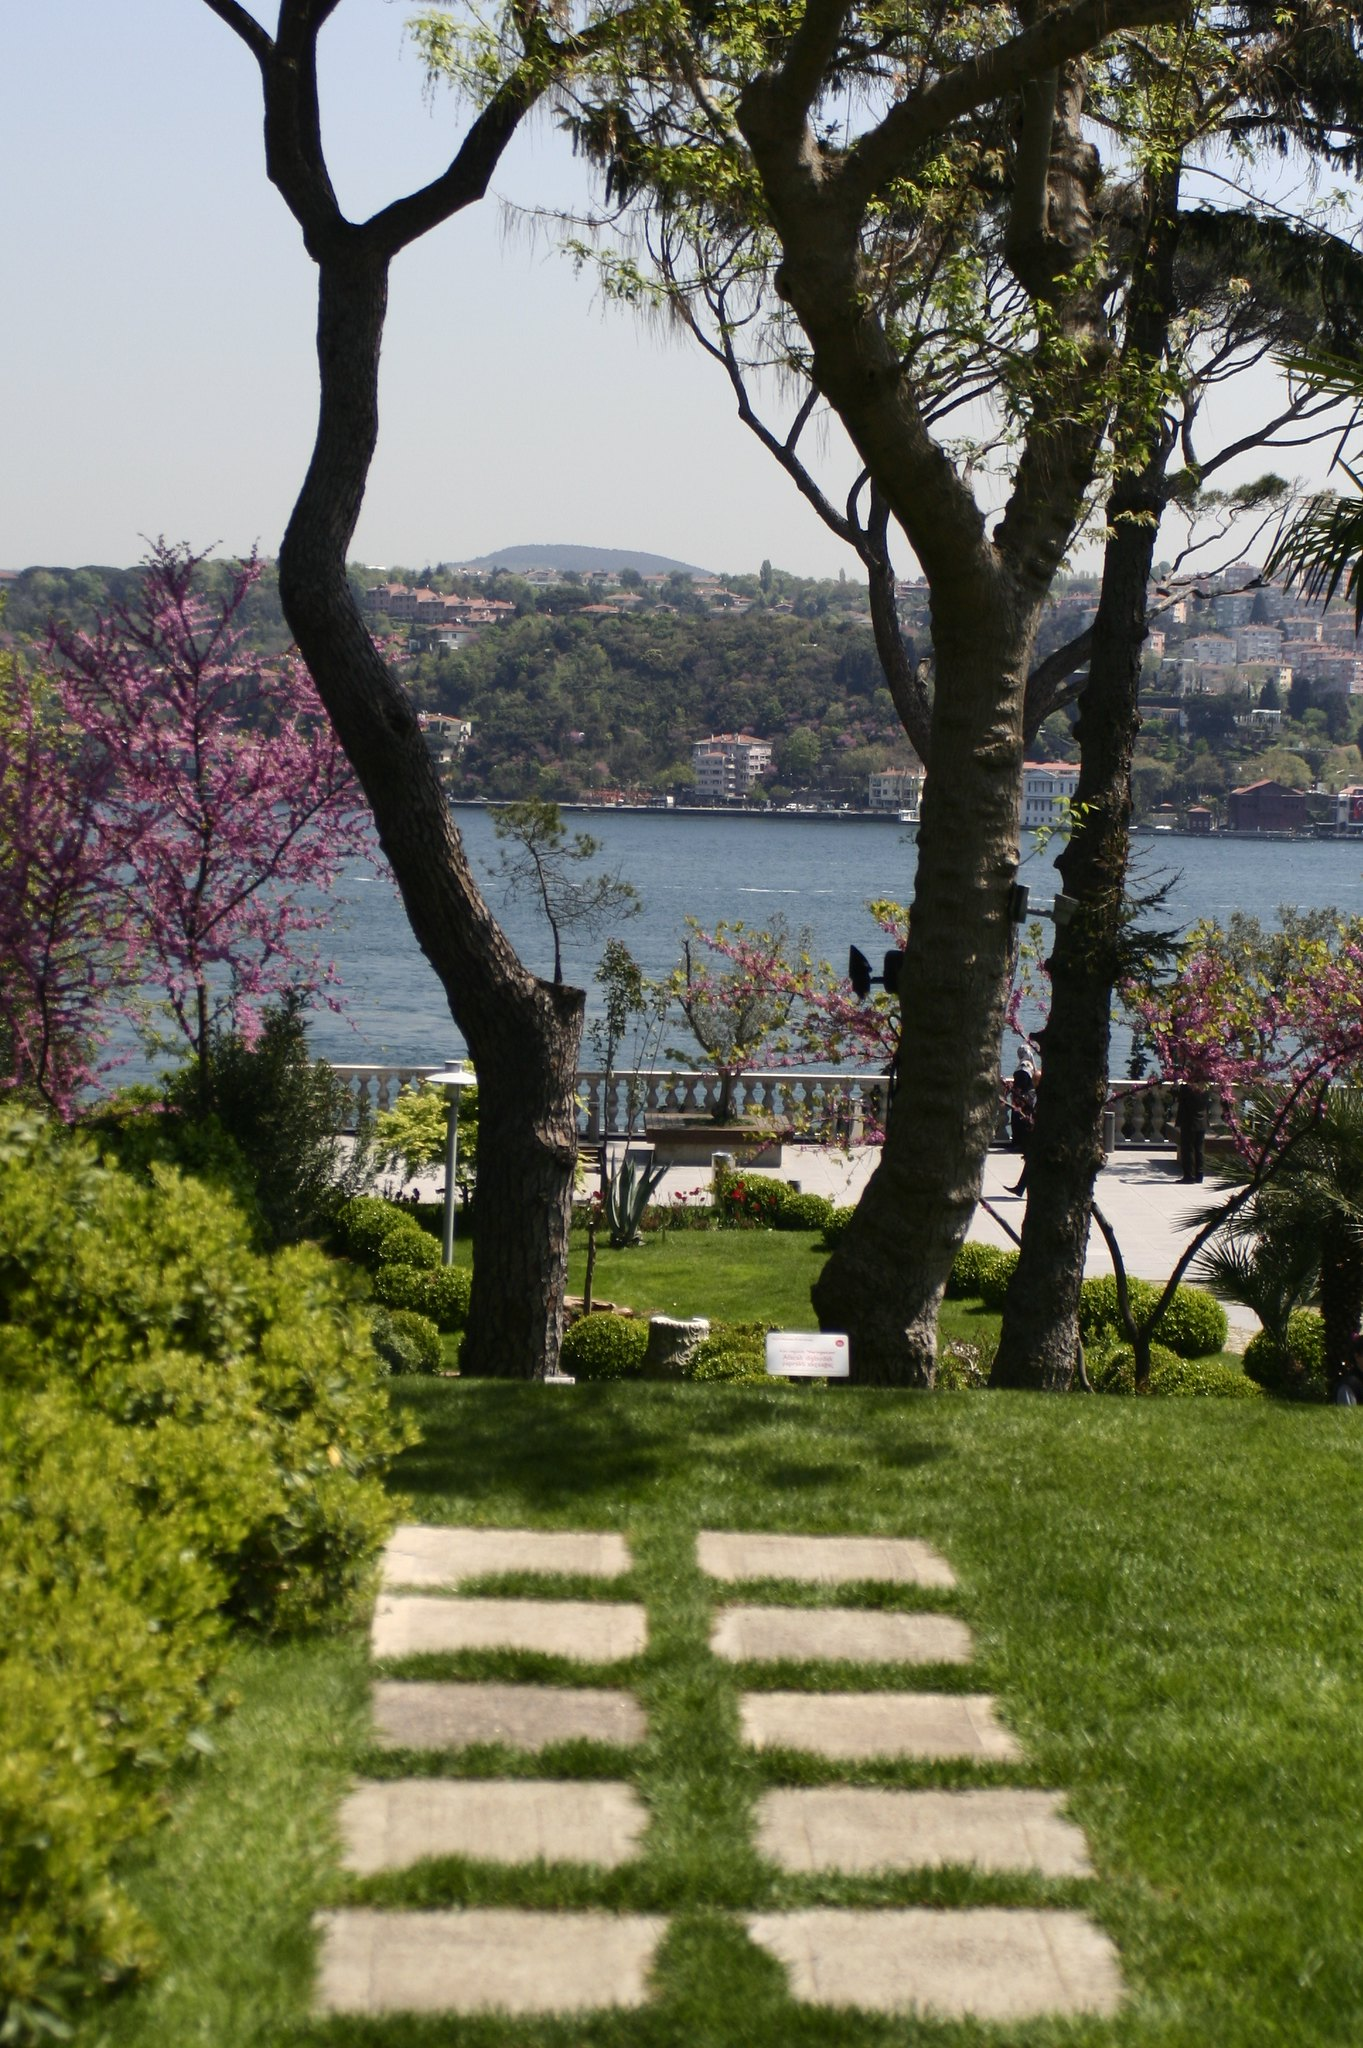 A view of the Bosporus from the Sakıp Sabancı.